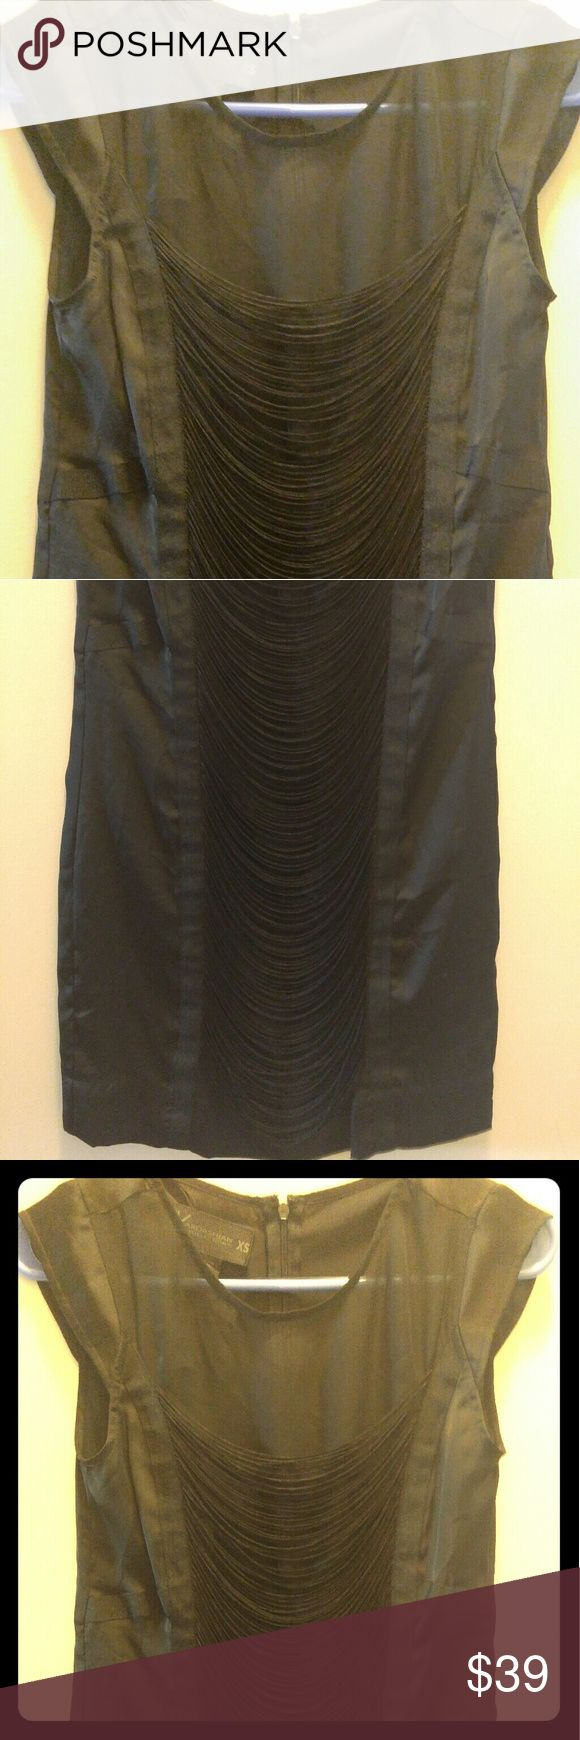 Kardashian Kollection Black Dress NWOT The Little Black Dress - Kardashian Kollection - NWOT - Size XS Kardashian Kollection Dresses Mini